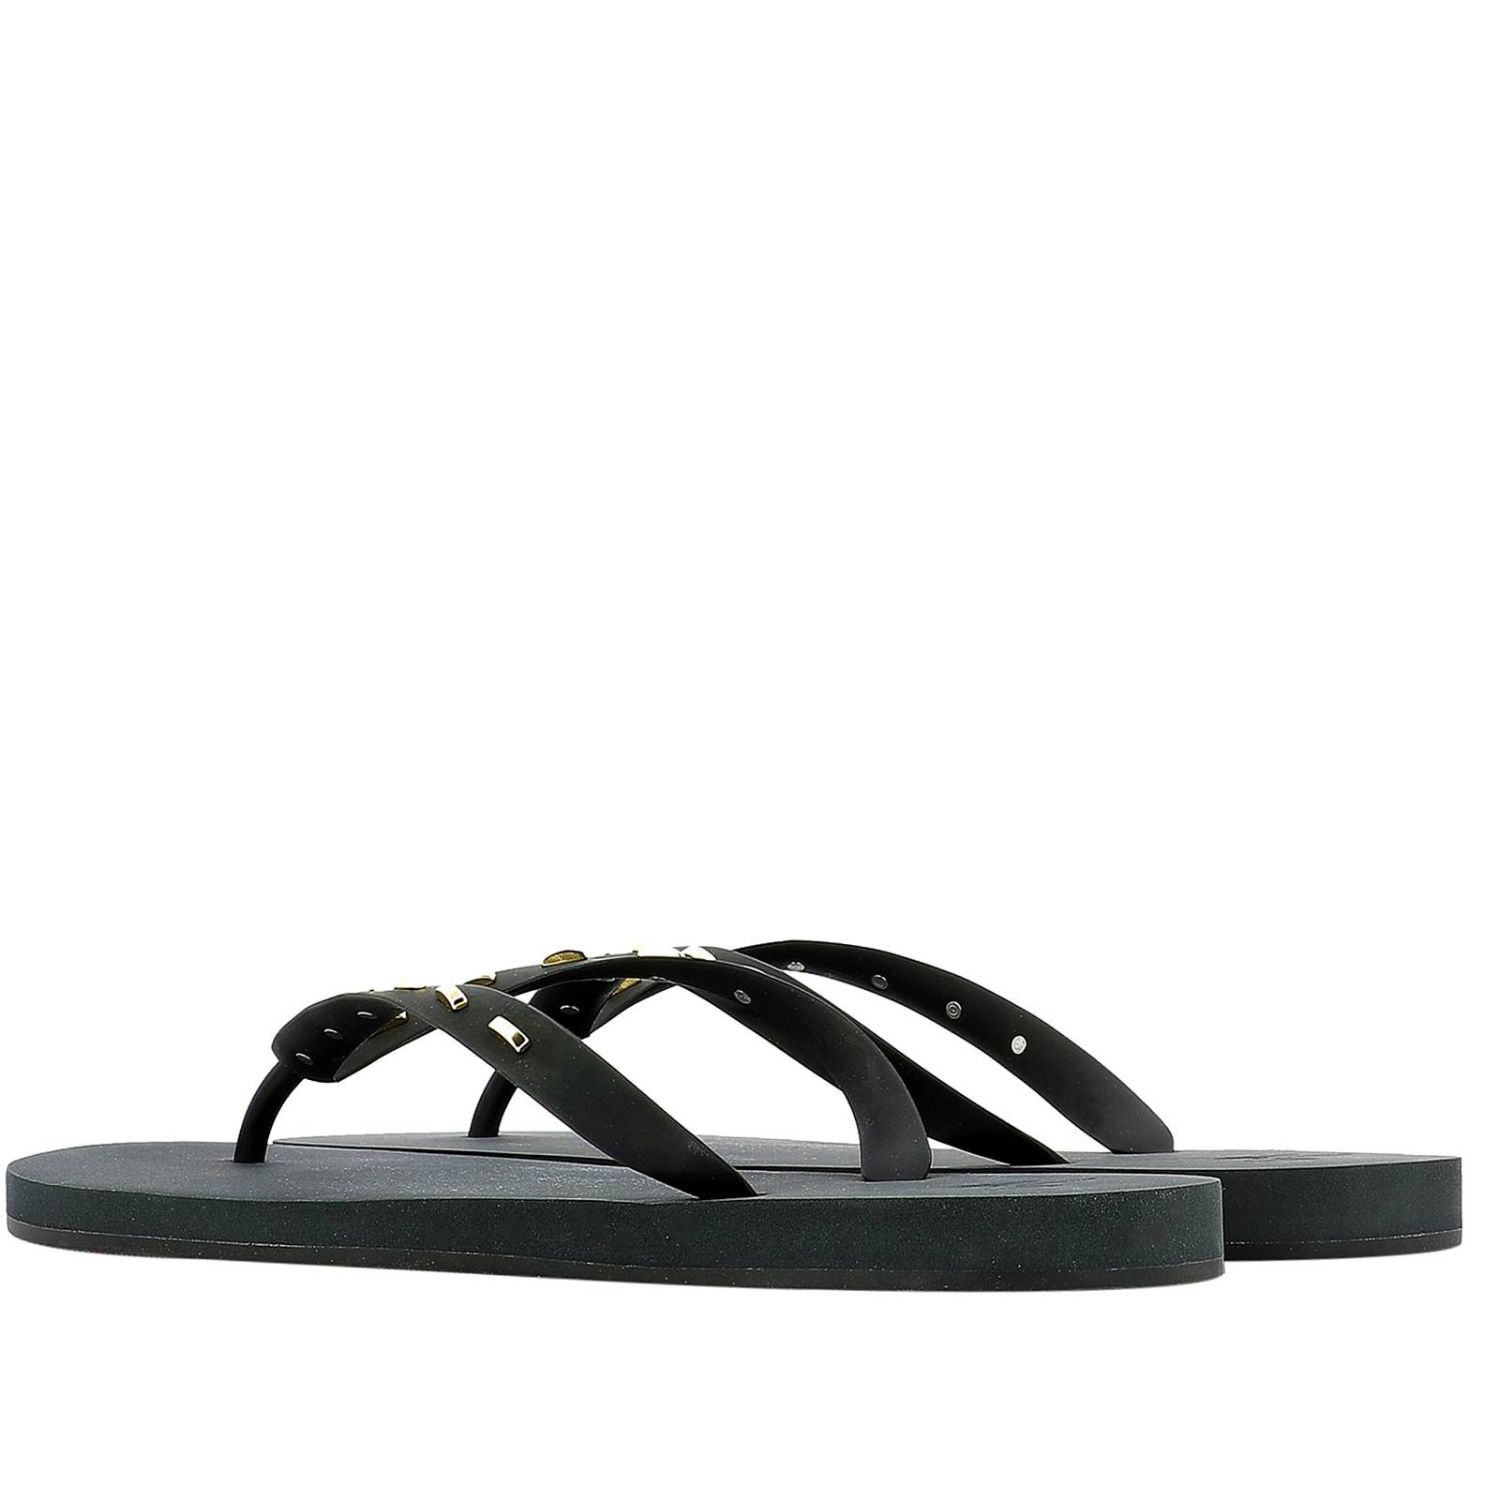 Sandals men Giuseppe Zanotti Design black 3